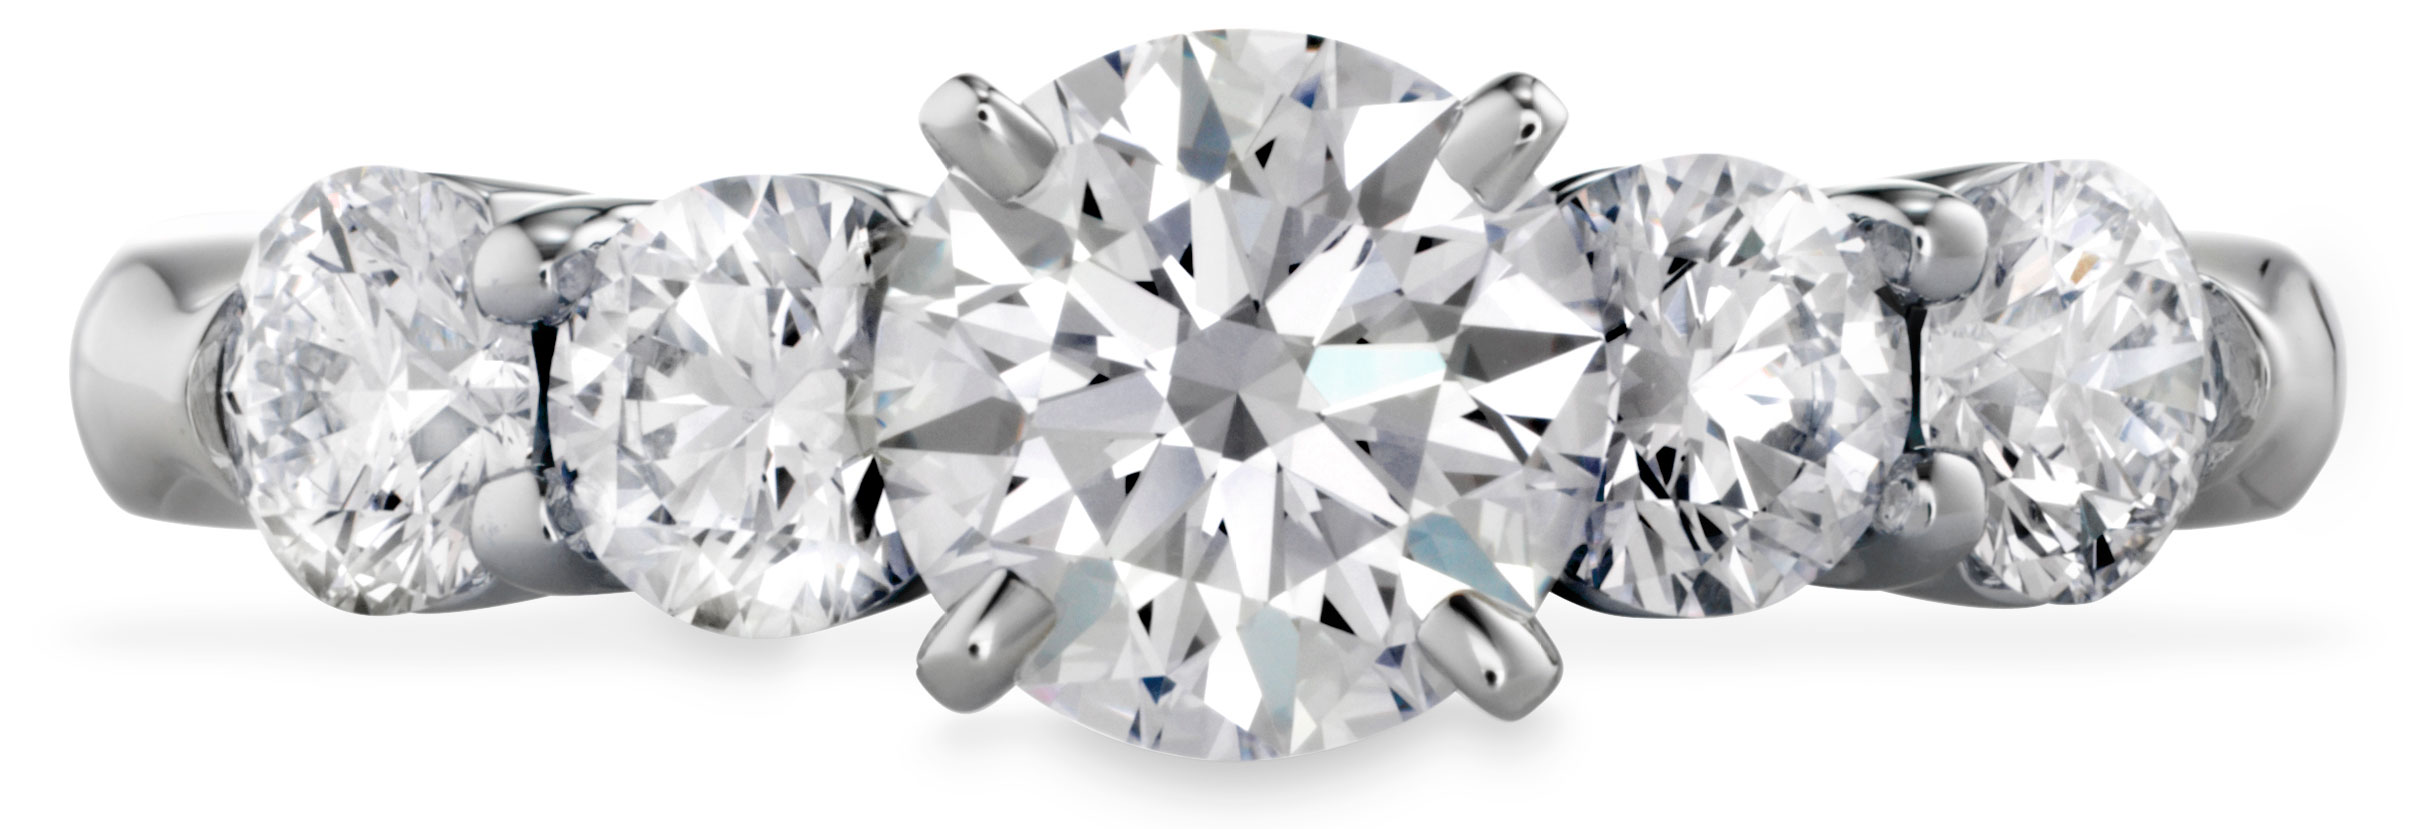 round pav all center diamonds sparkle bringing starlit even in product the to ring worthy more with and blooms light crown along bein spotlight a is this band diamond of set